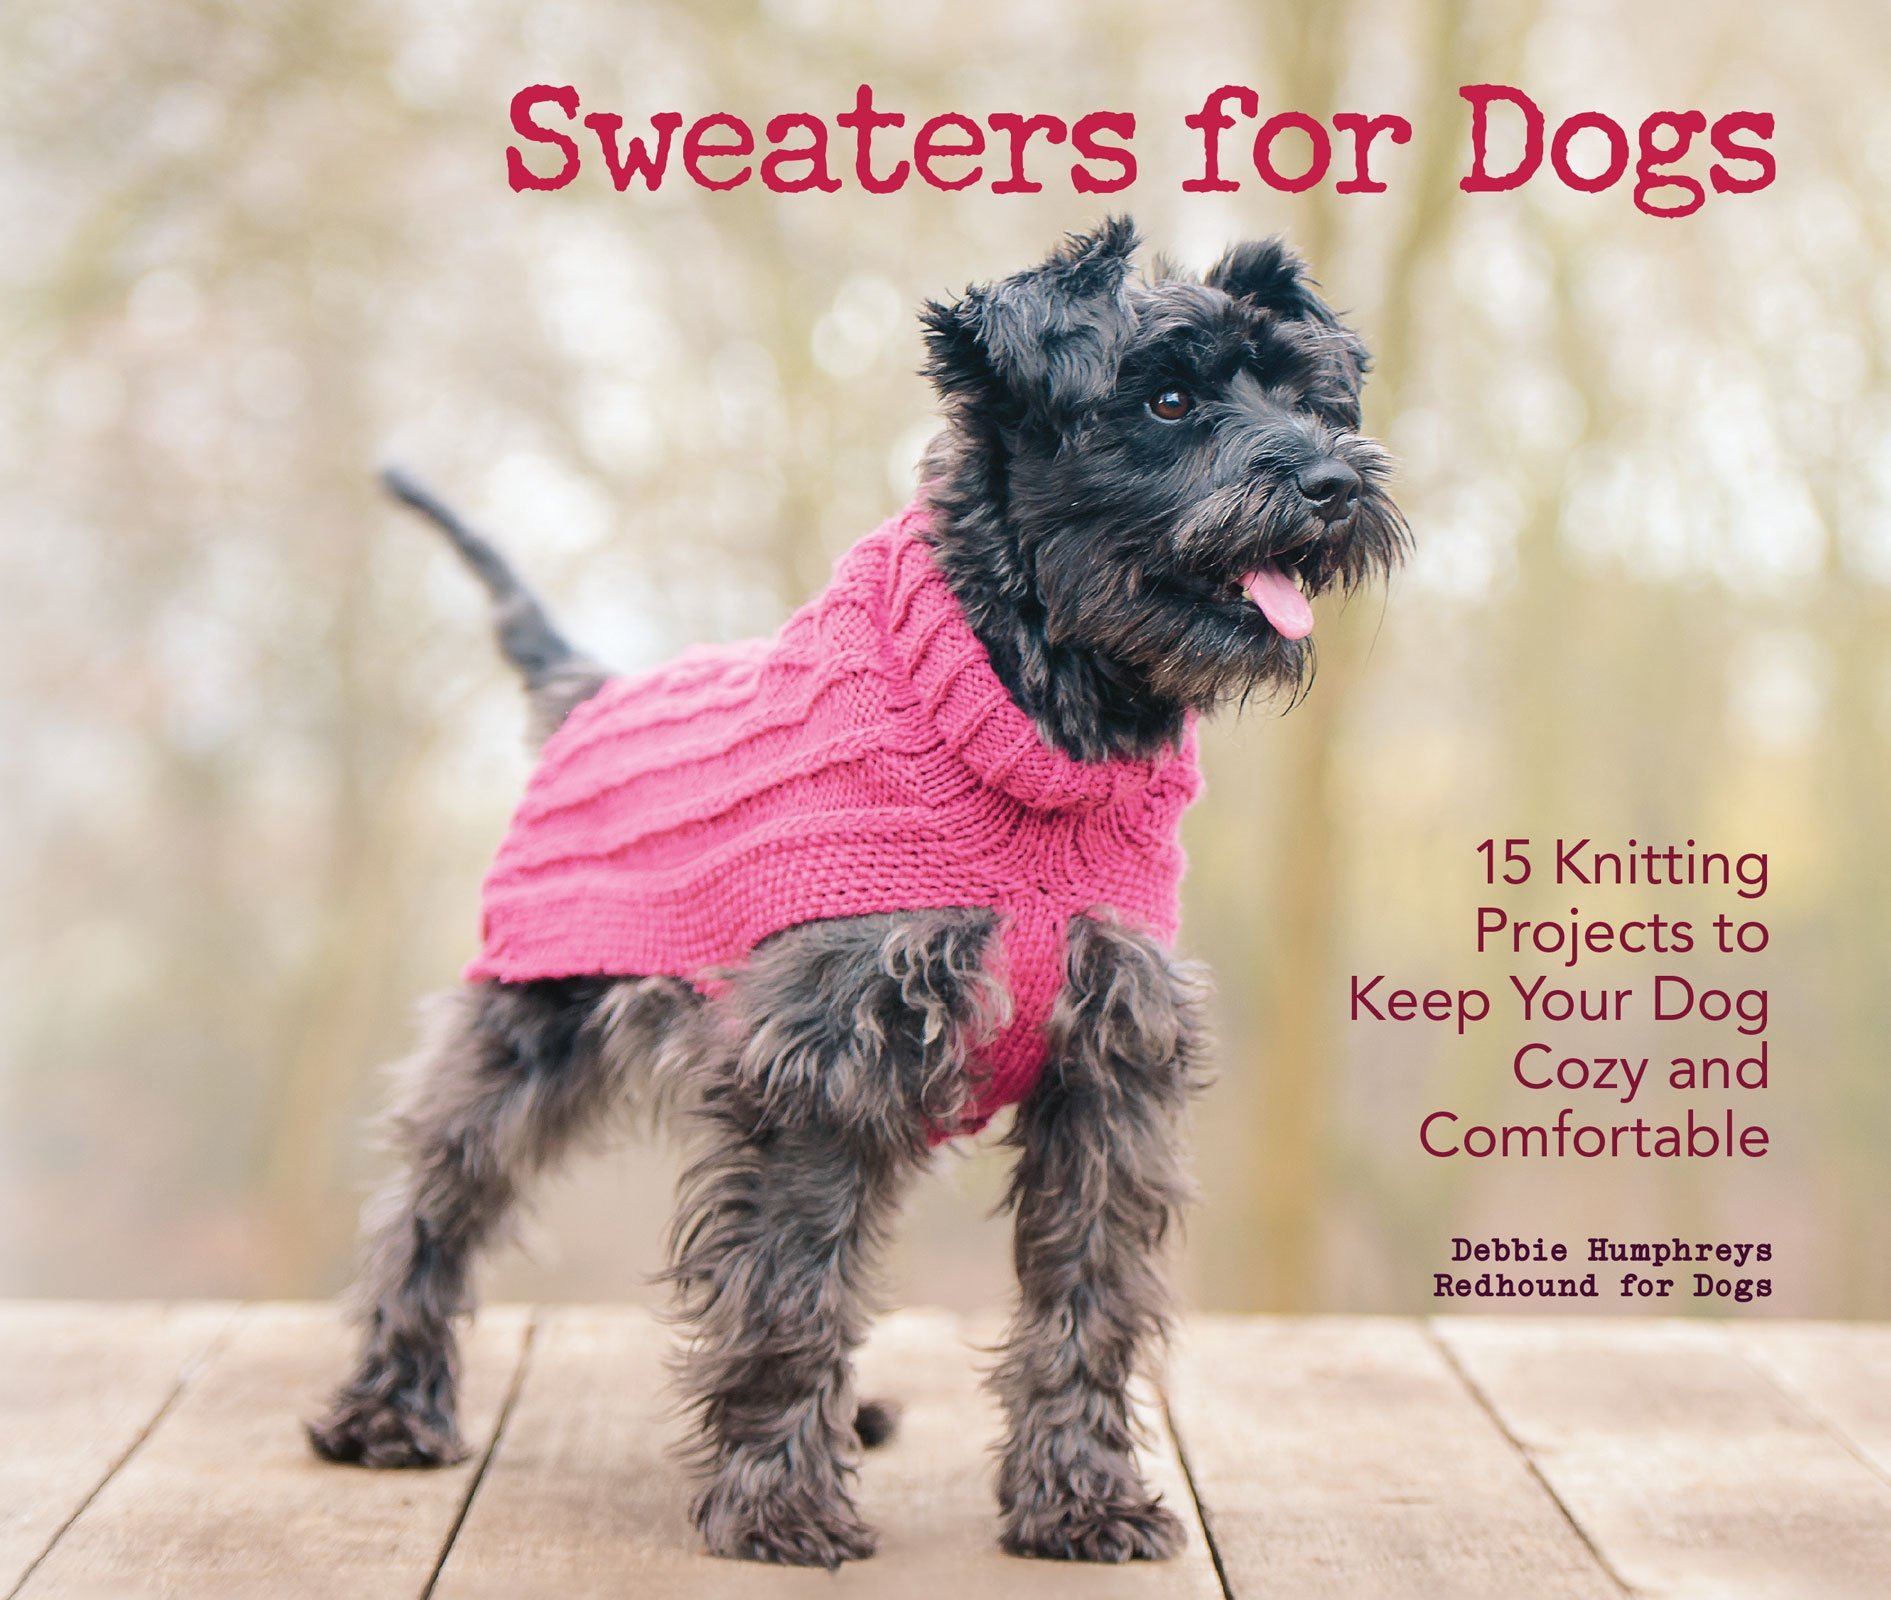 Sweaters for Dogs 15 Knitting Projects to Keep Your Dog Cozy and  Comfortable Dogs Redhound for 9781621871521 Amazon.com Books